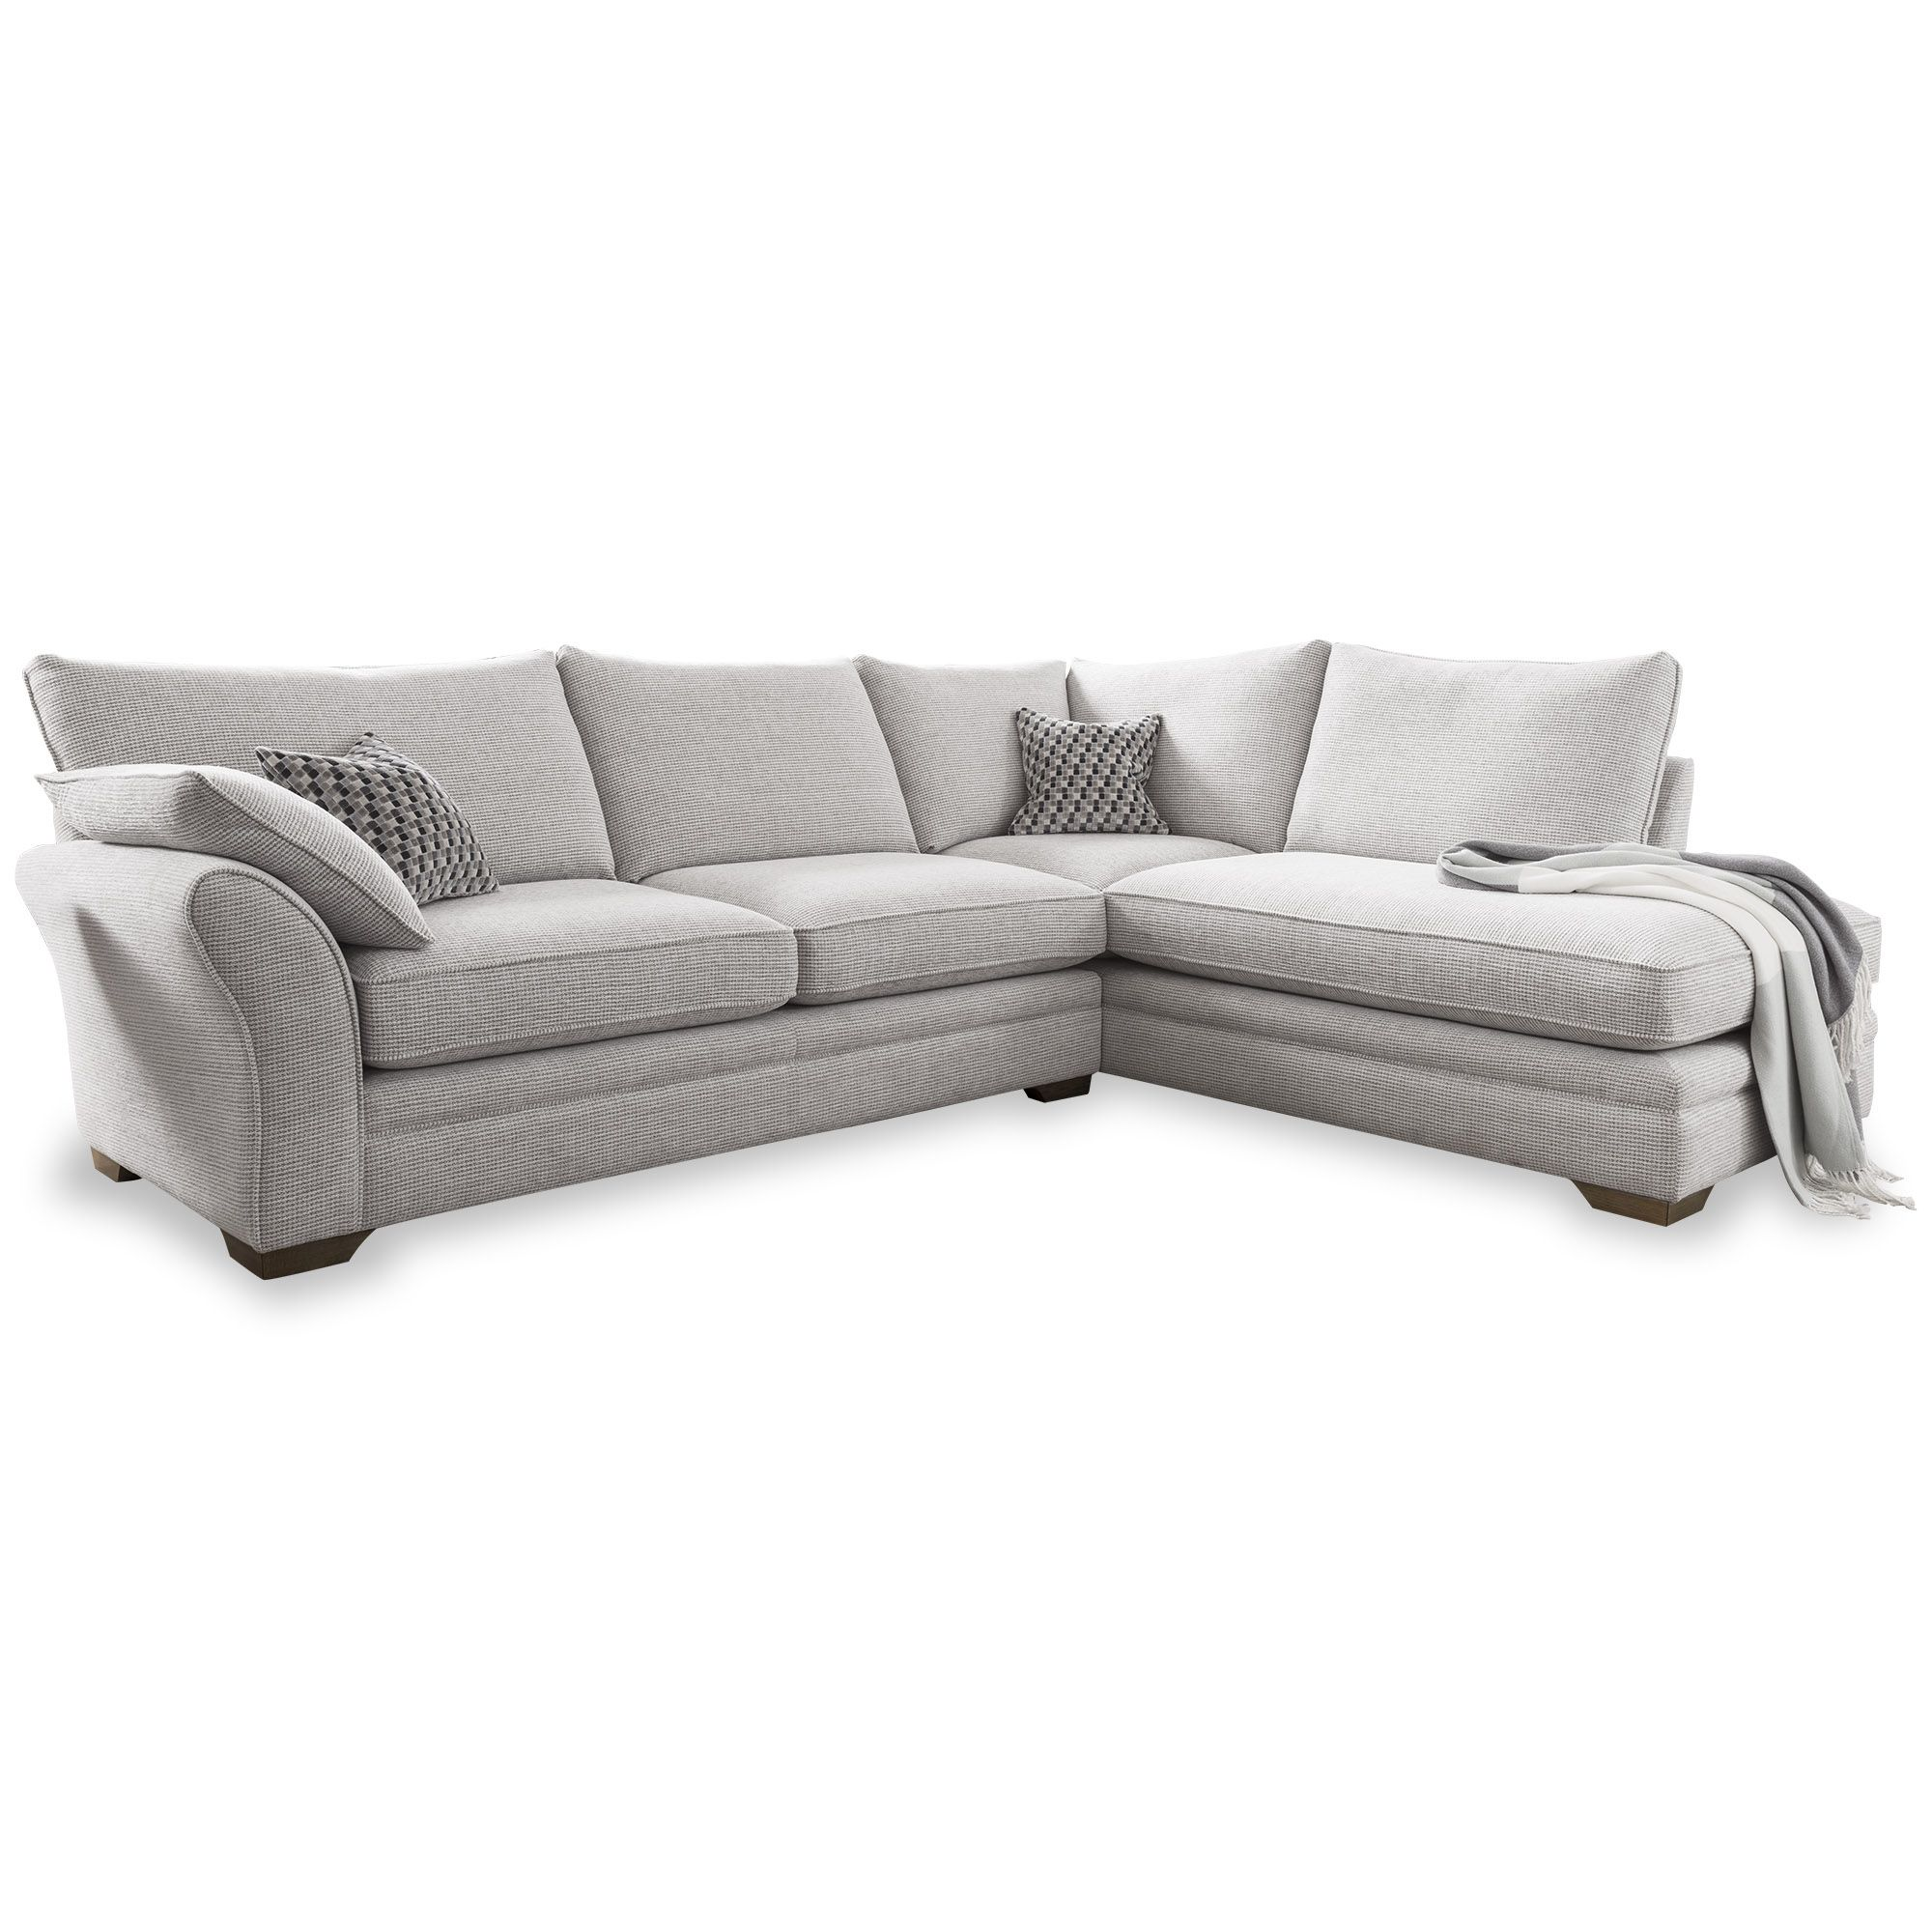 Meubles Fraser Furniture Solano 4 Corner Sofa With Chaise Rhf Fabric C